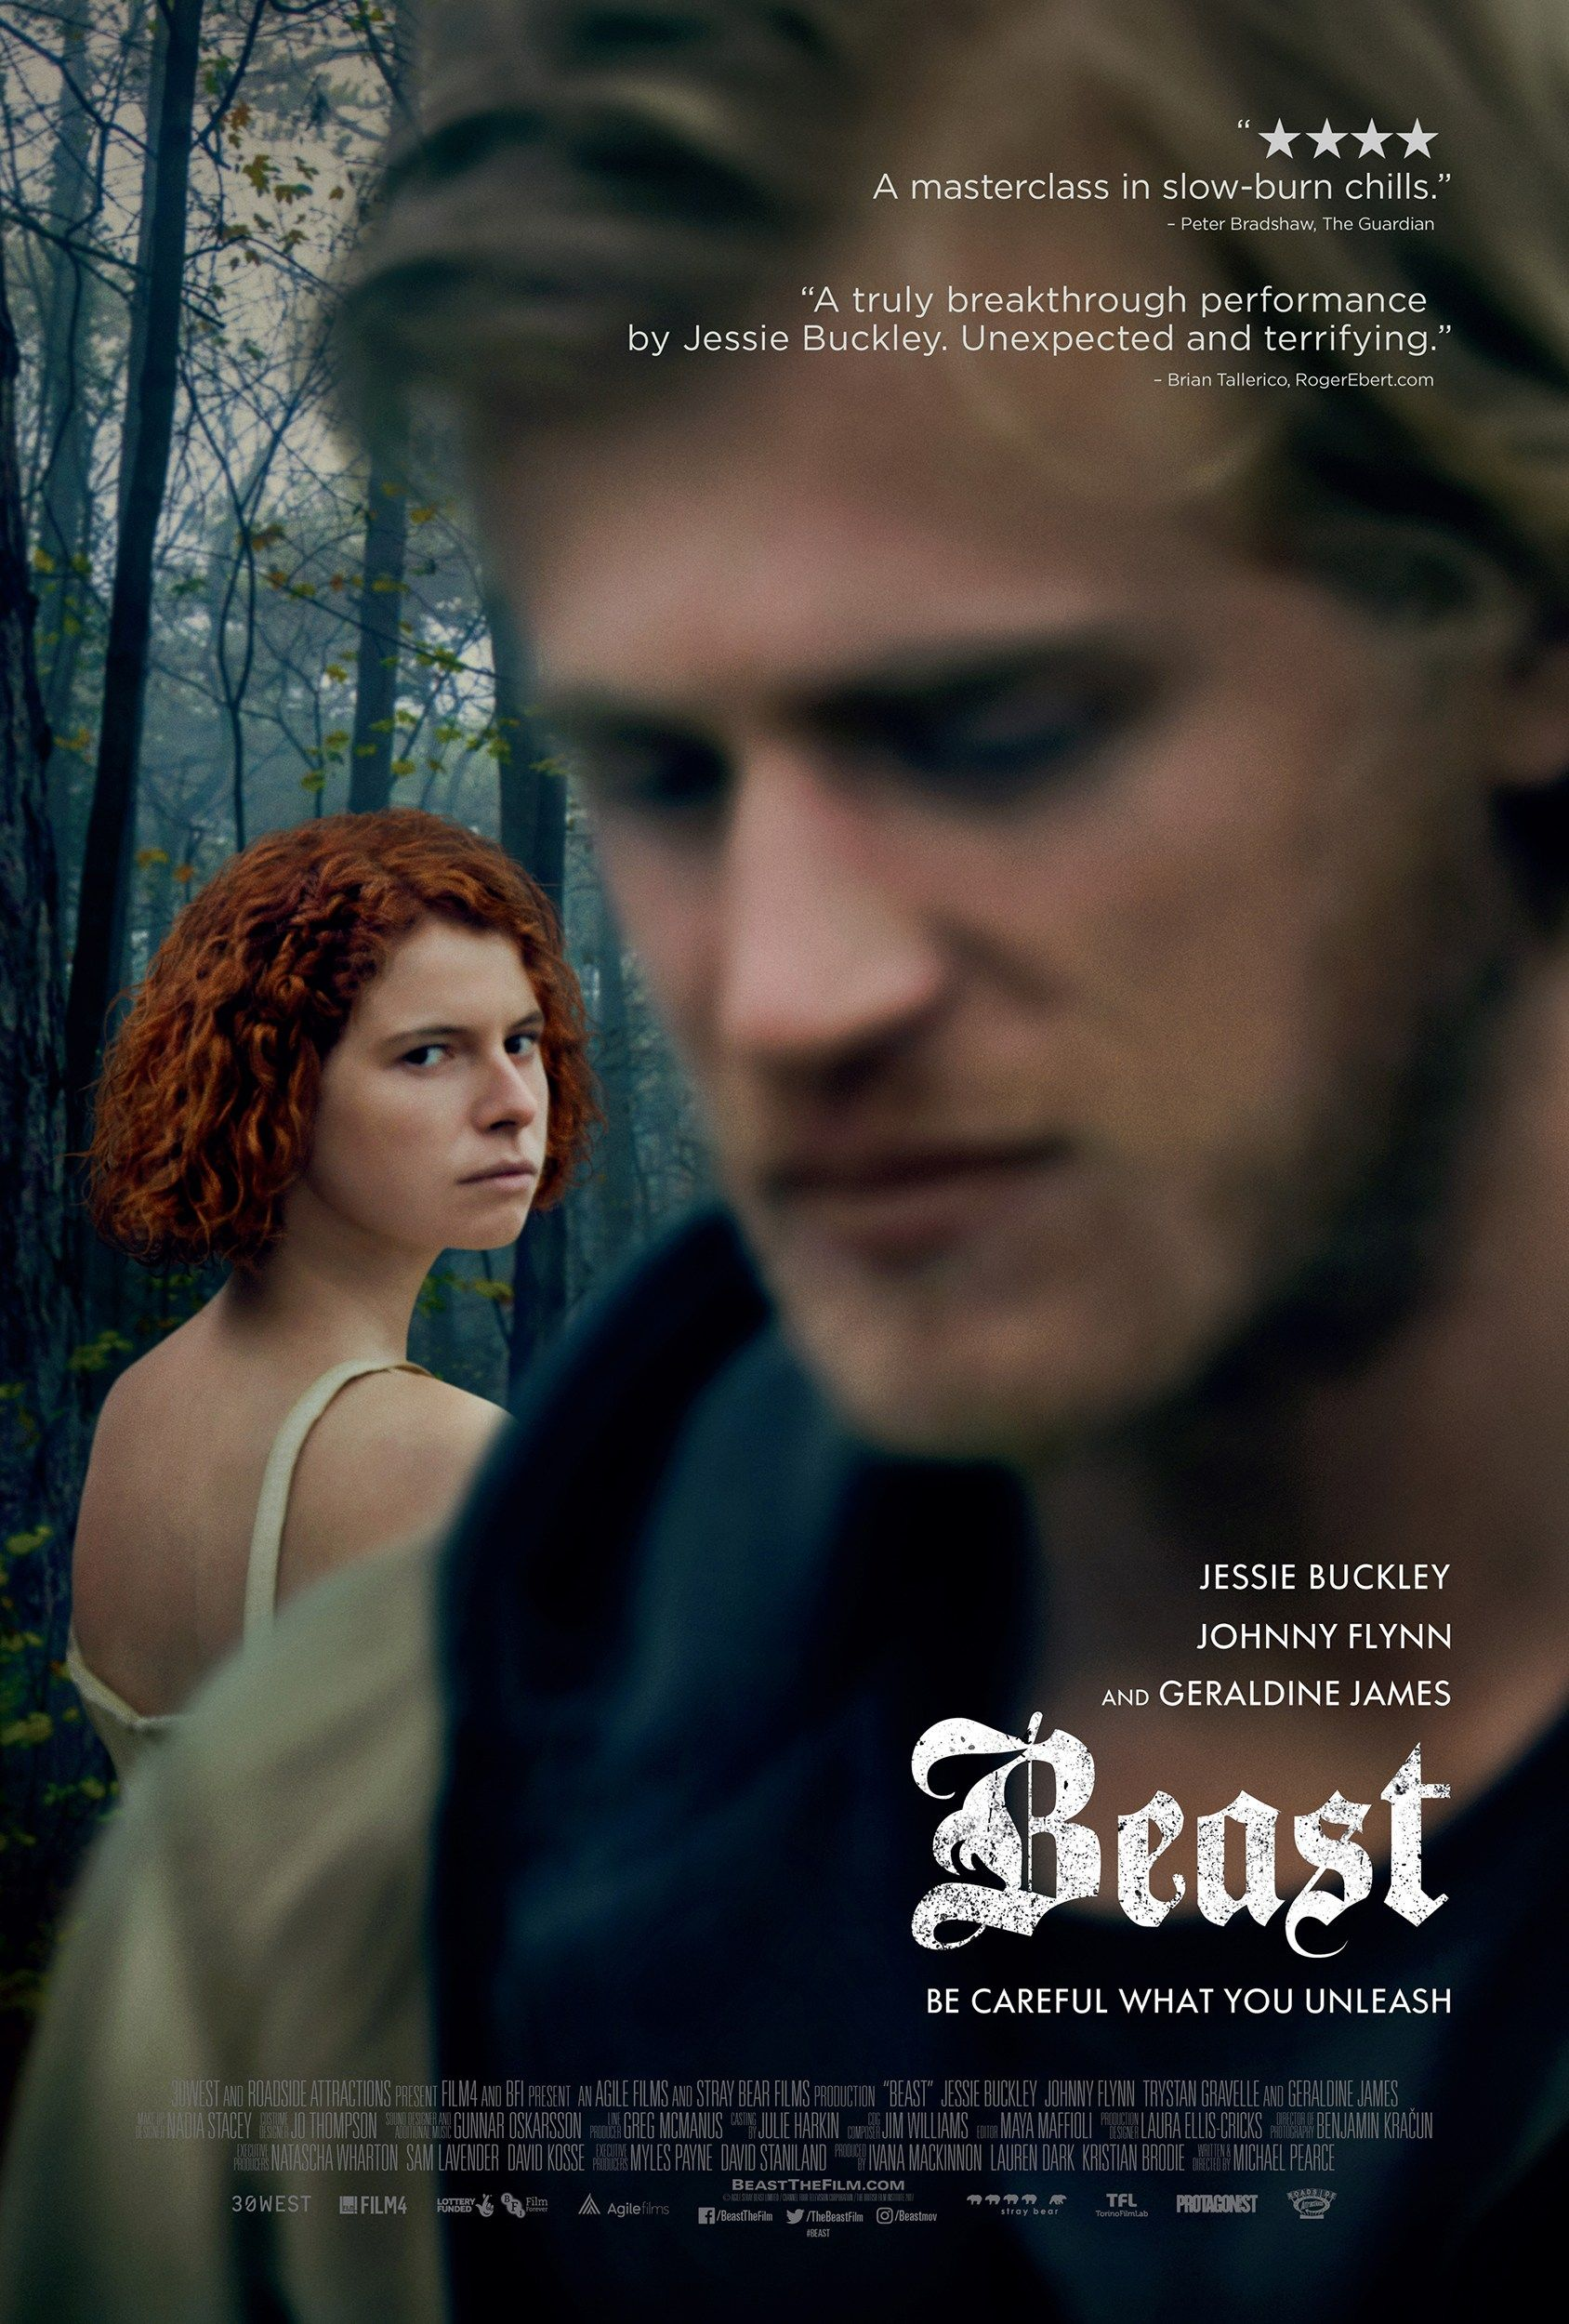 Michael Pearce S Beast With Images Johnny Flynn Jessie